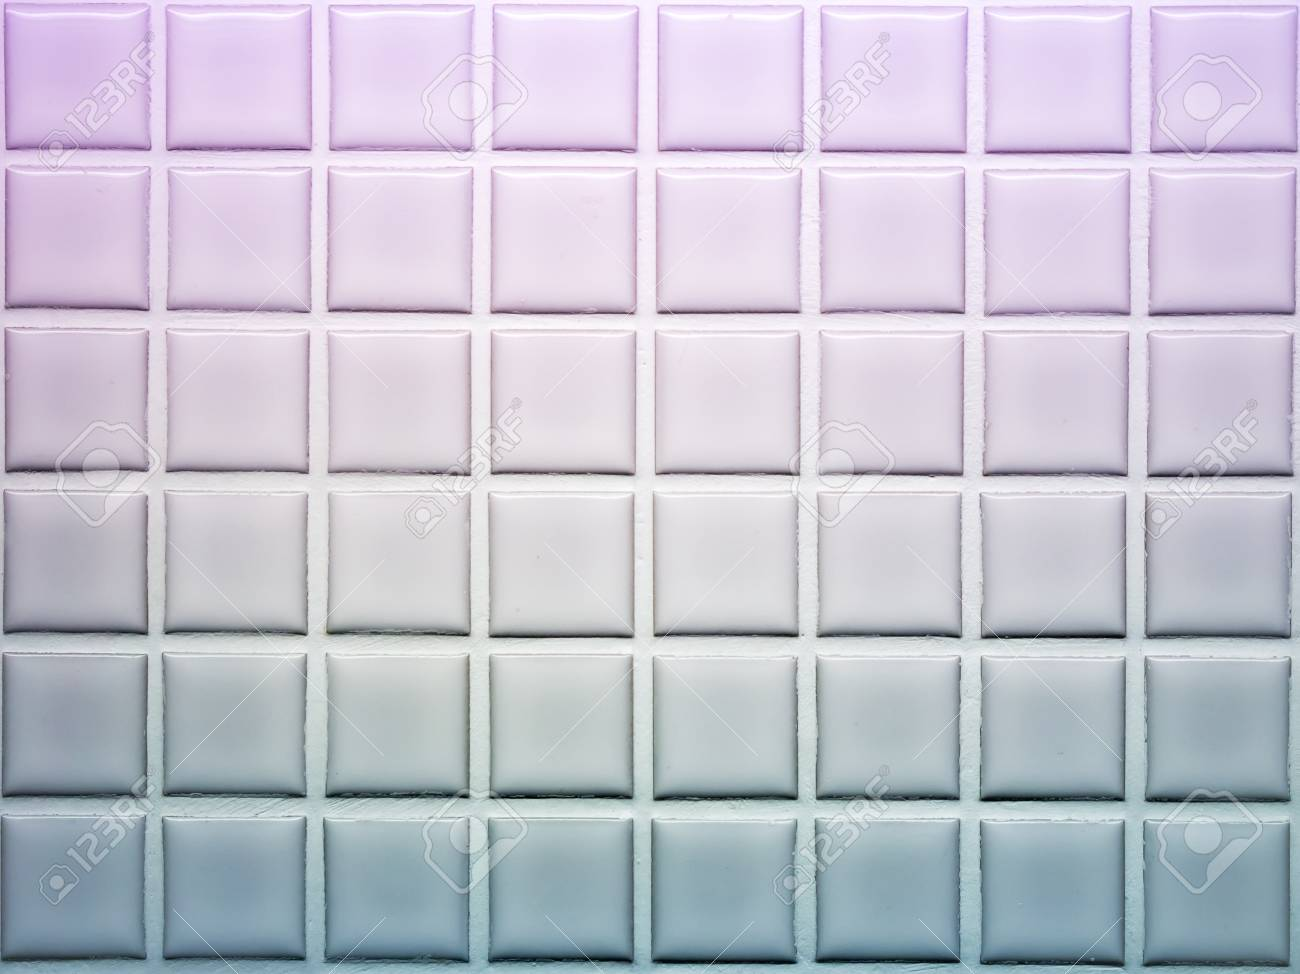 Mosaic Tiles Wall Decoration In Violet And Blue Shade Stock Photo ...